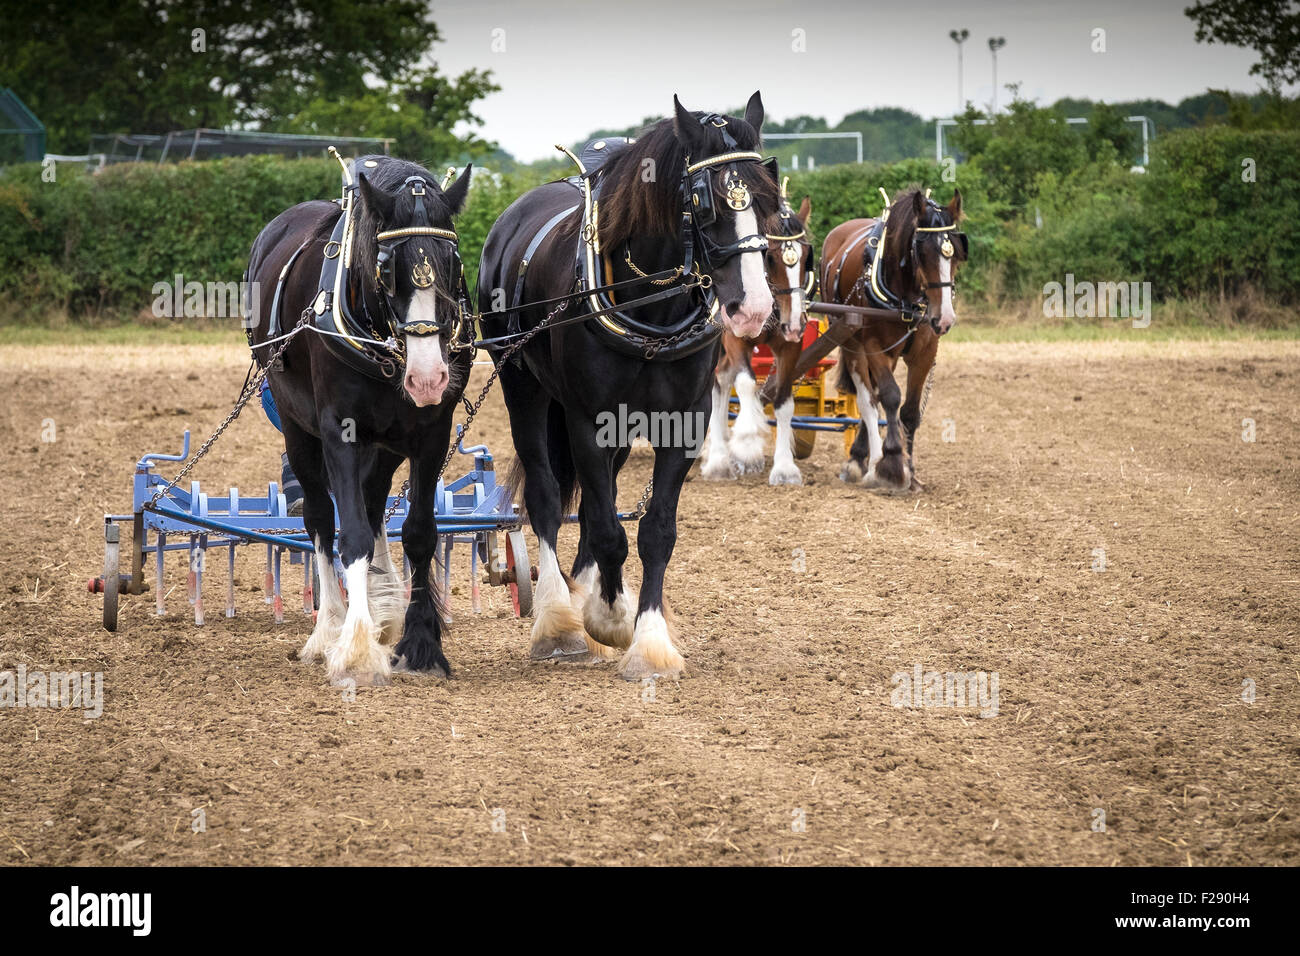 Shire horses at work in a field at the Essex Country Show, Barleylands, Essex. - Stock Image